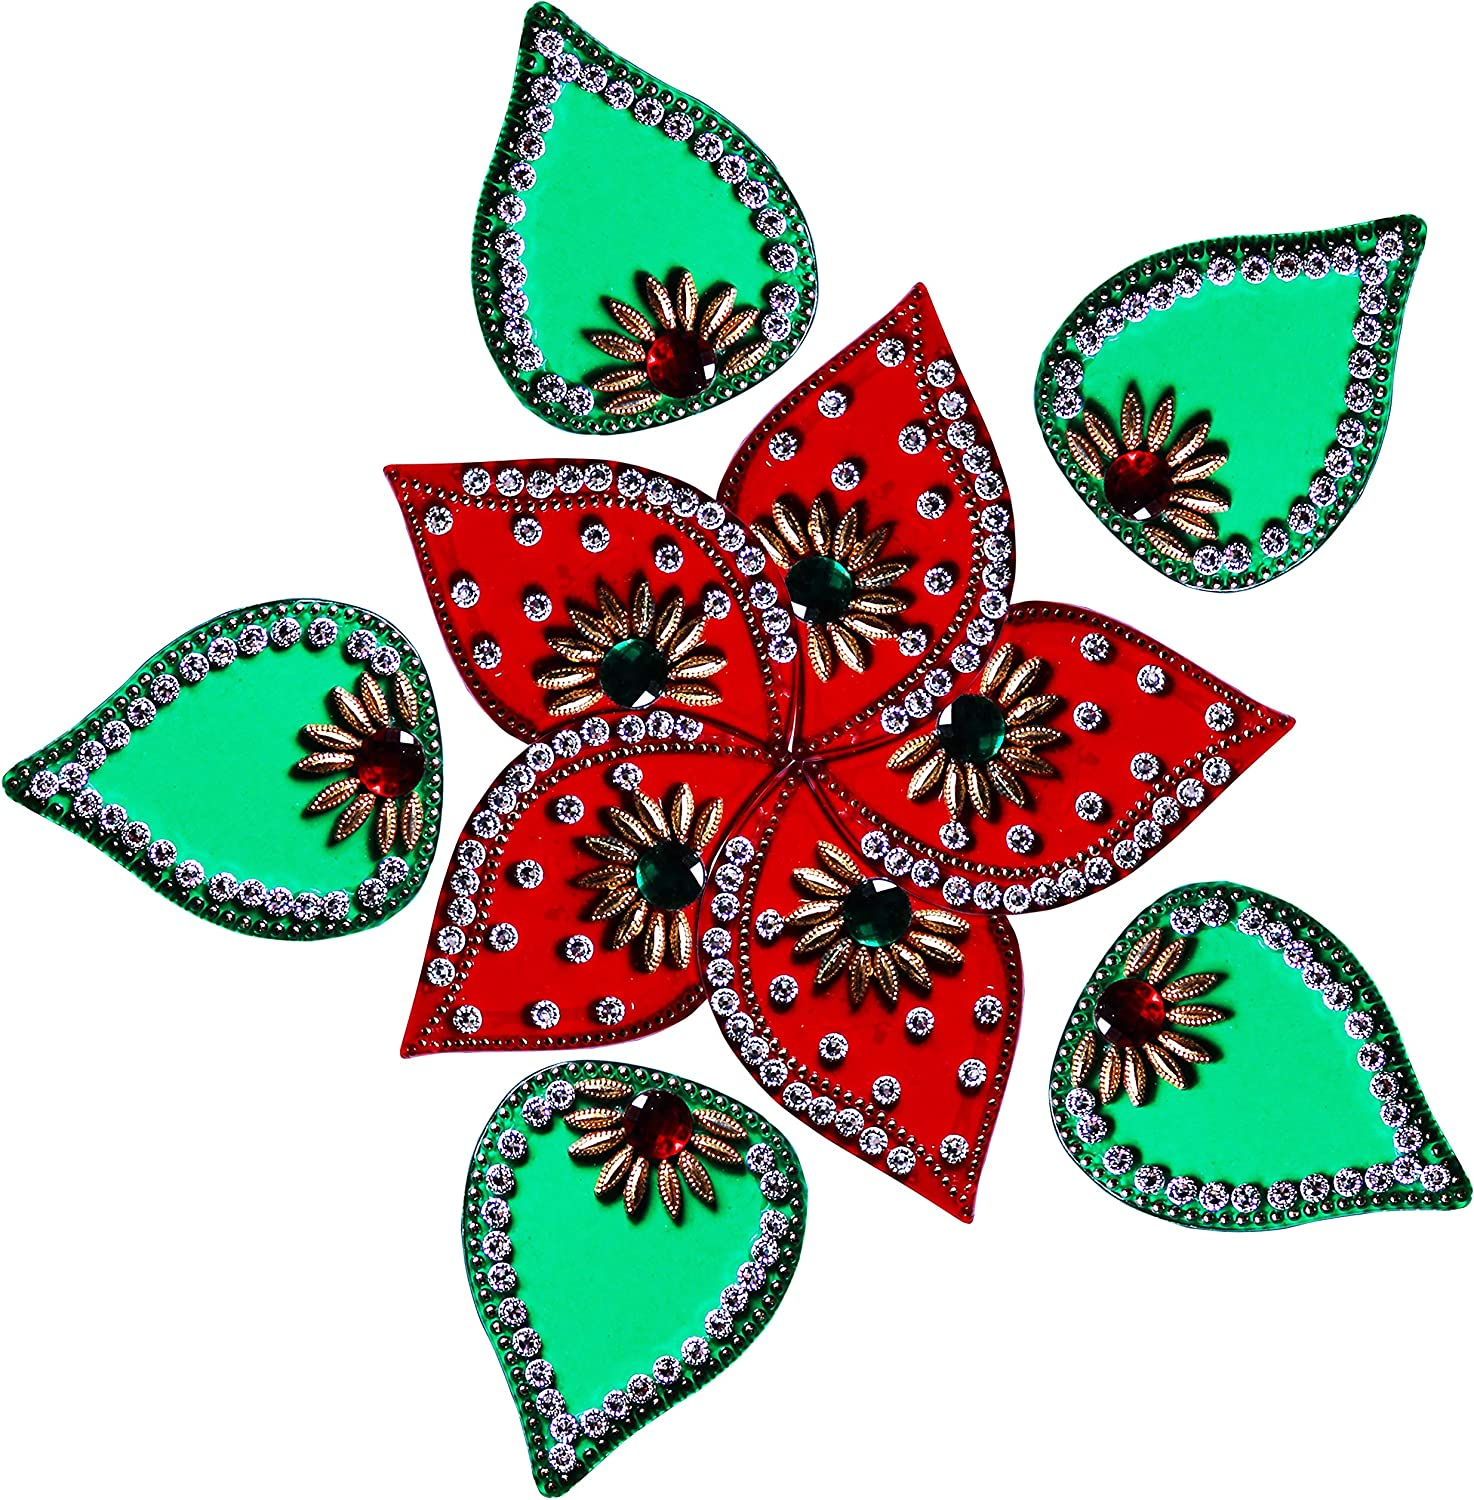 Diwali Acrylic Lotus Modak Rangoli Floor Decorations Red Color with Studded Stones and Sequins, Traditional Festive Home Décor 10 Pcs